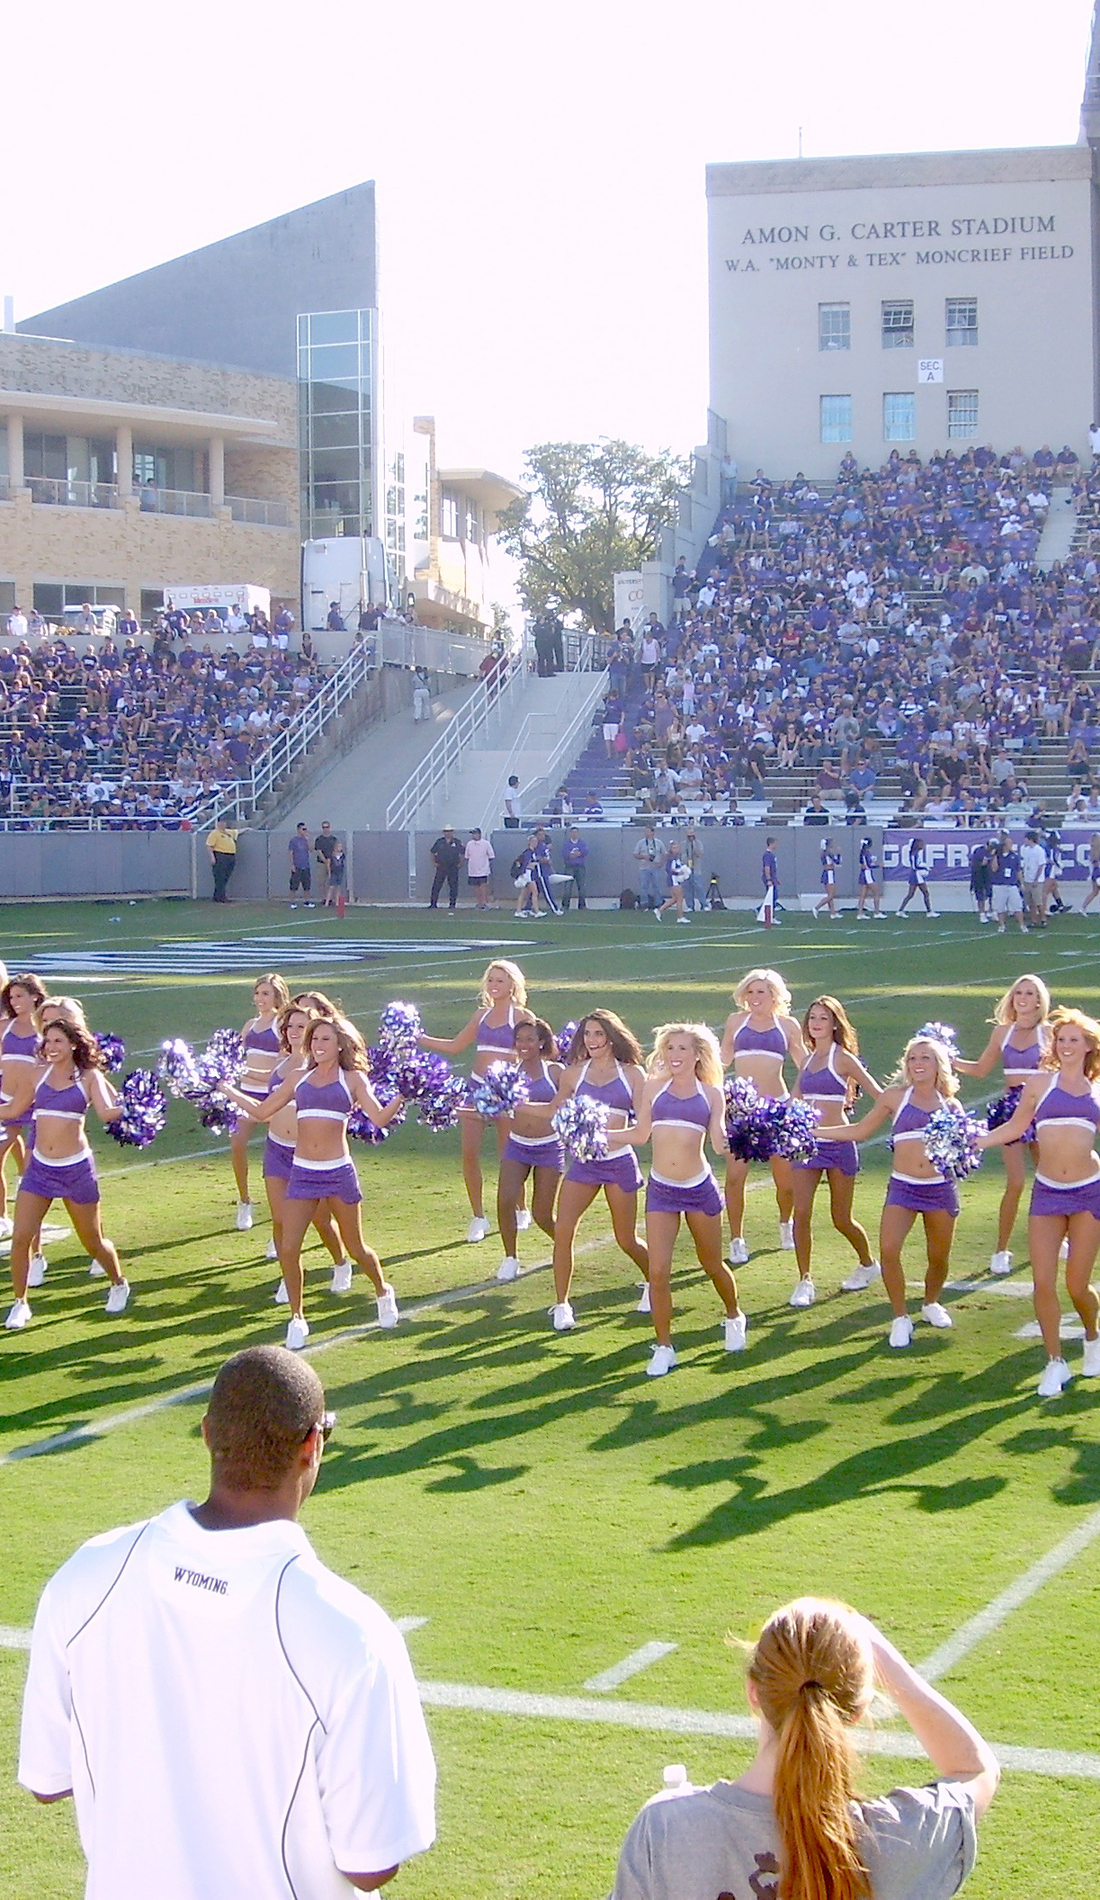 A TCU Horned Frogs Football live event